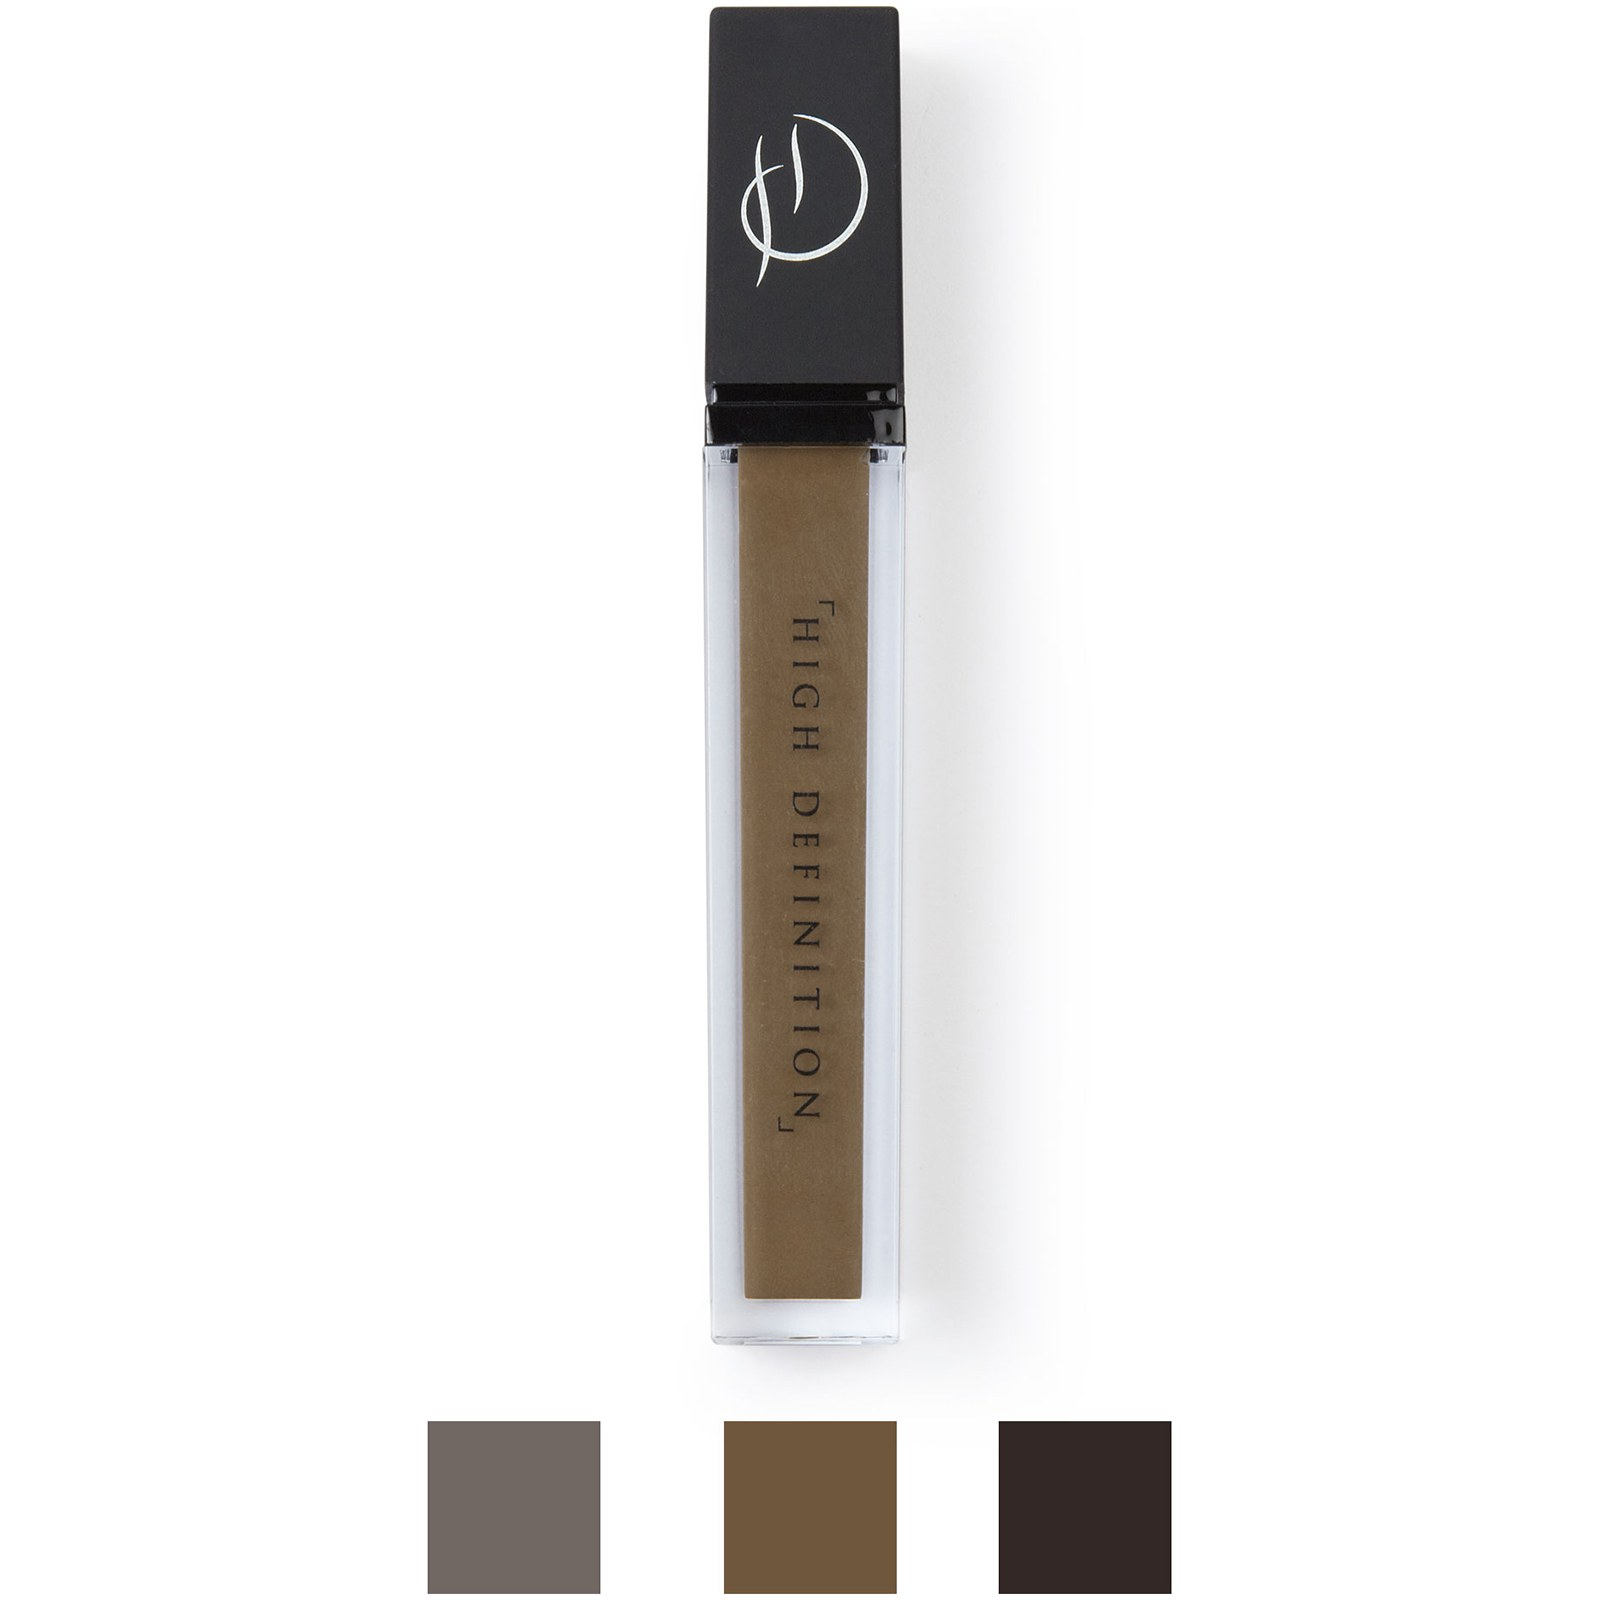 HD Brows Brow Colourfix (Various Shades)